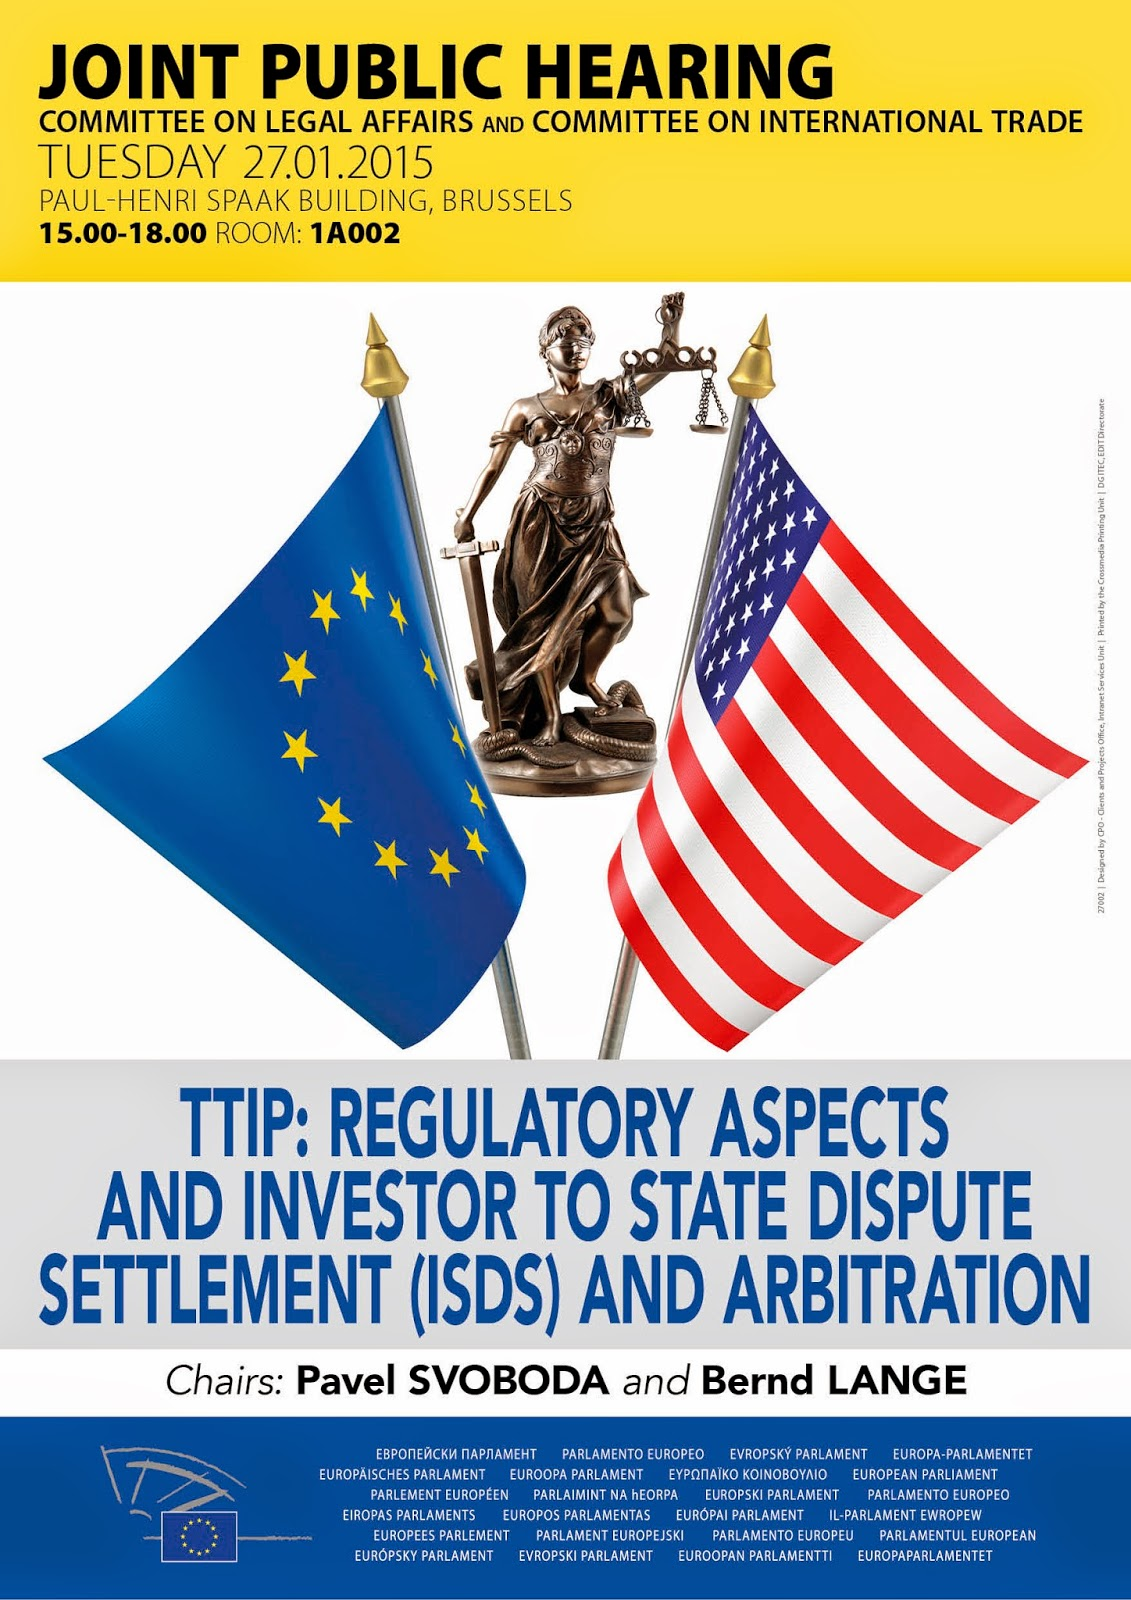 TRANSATLANTIC TRADE AND INVESTMENT PARTNERSHIP (TTIP): REGULATORY ASPECTS